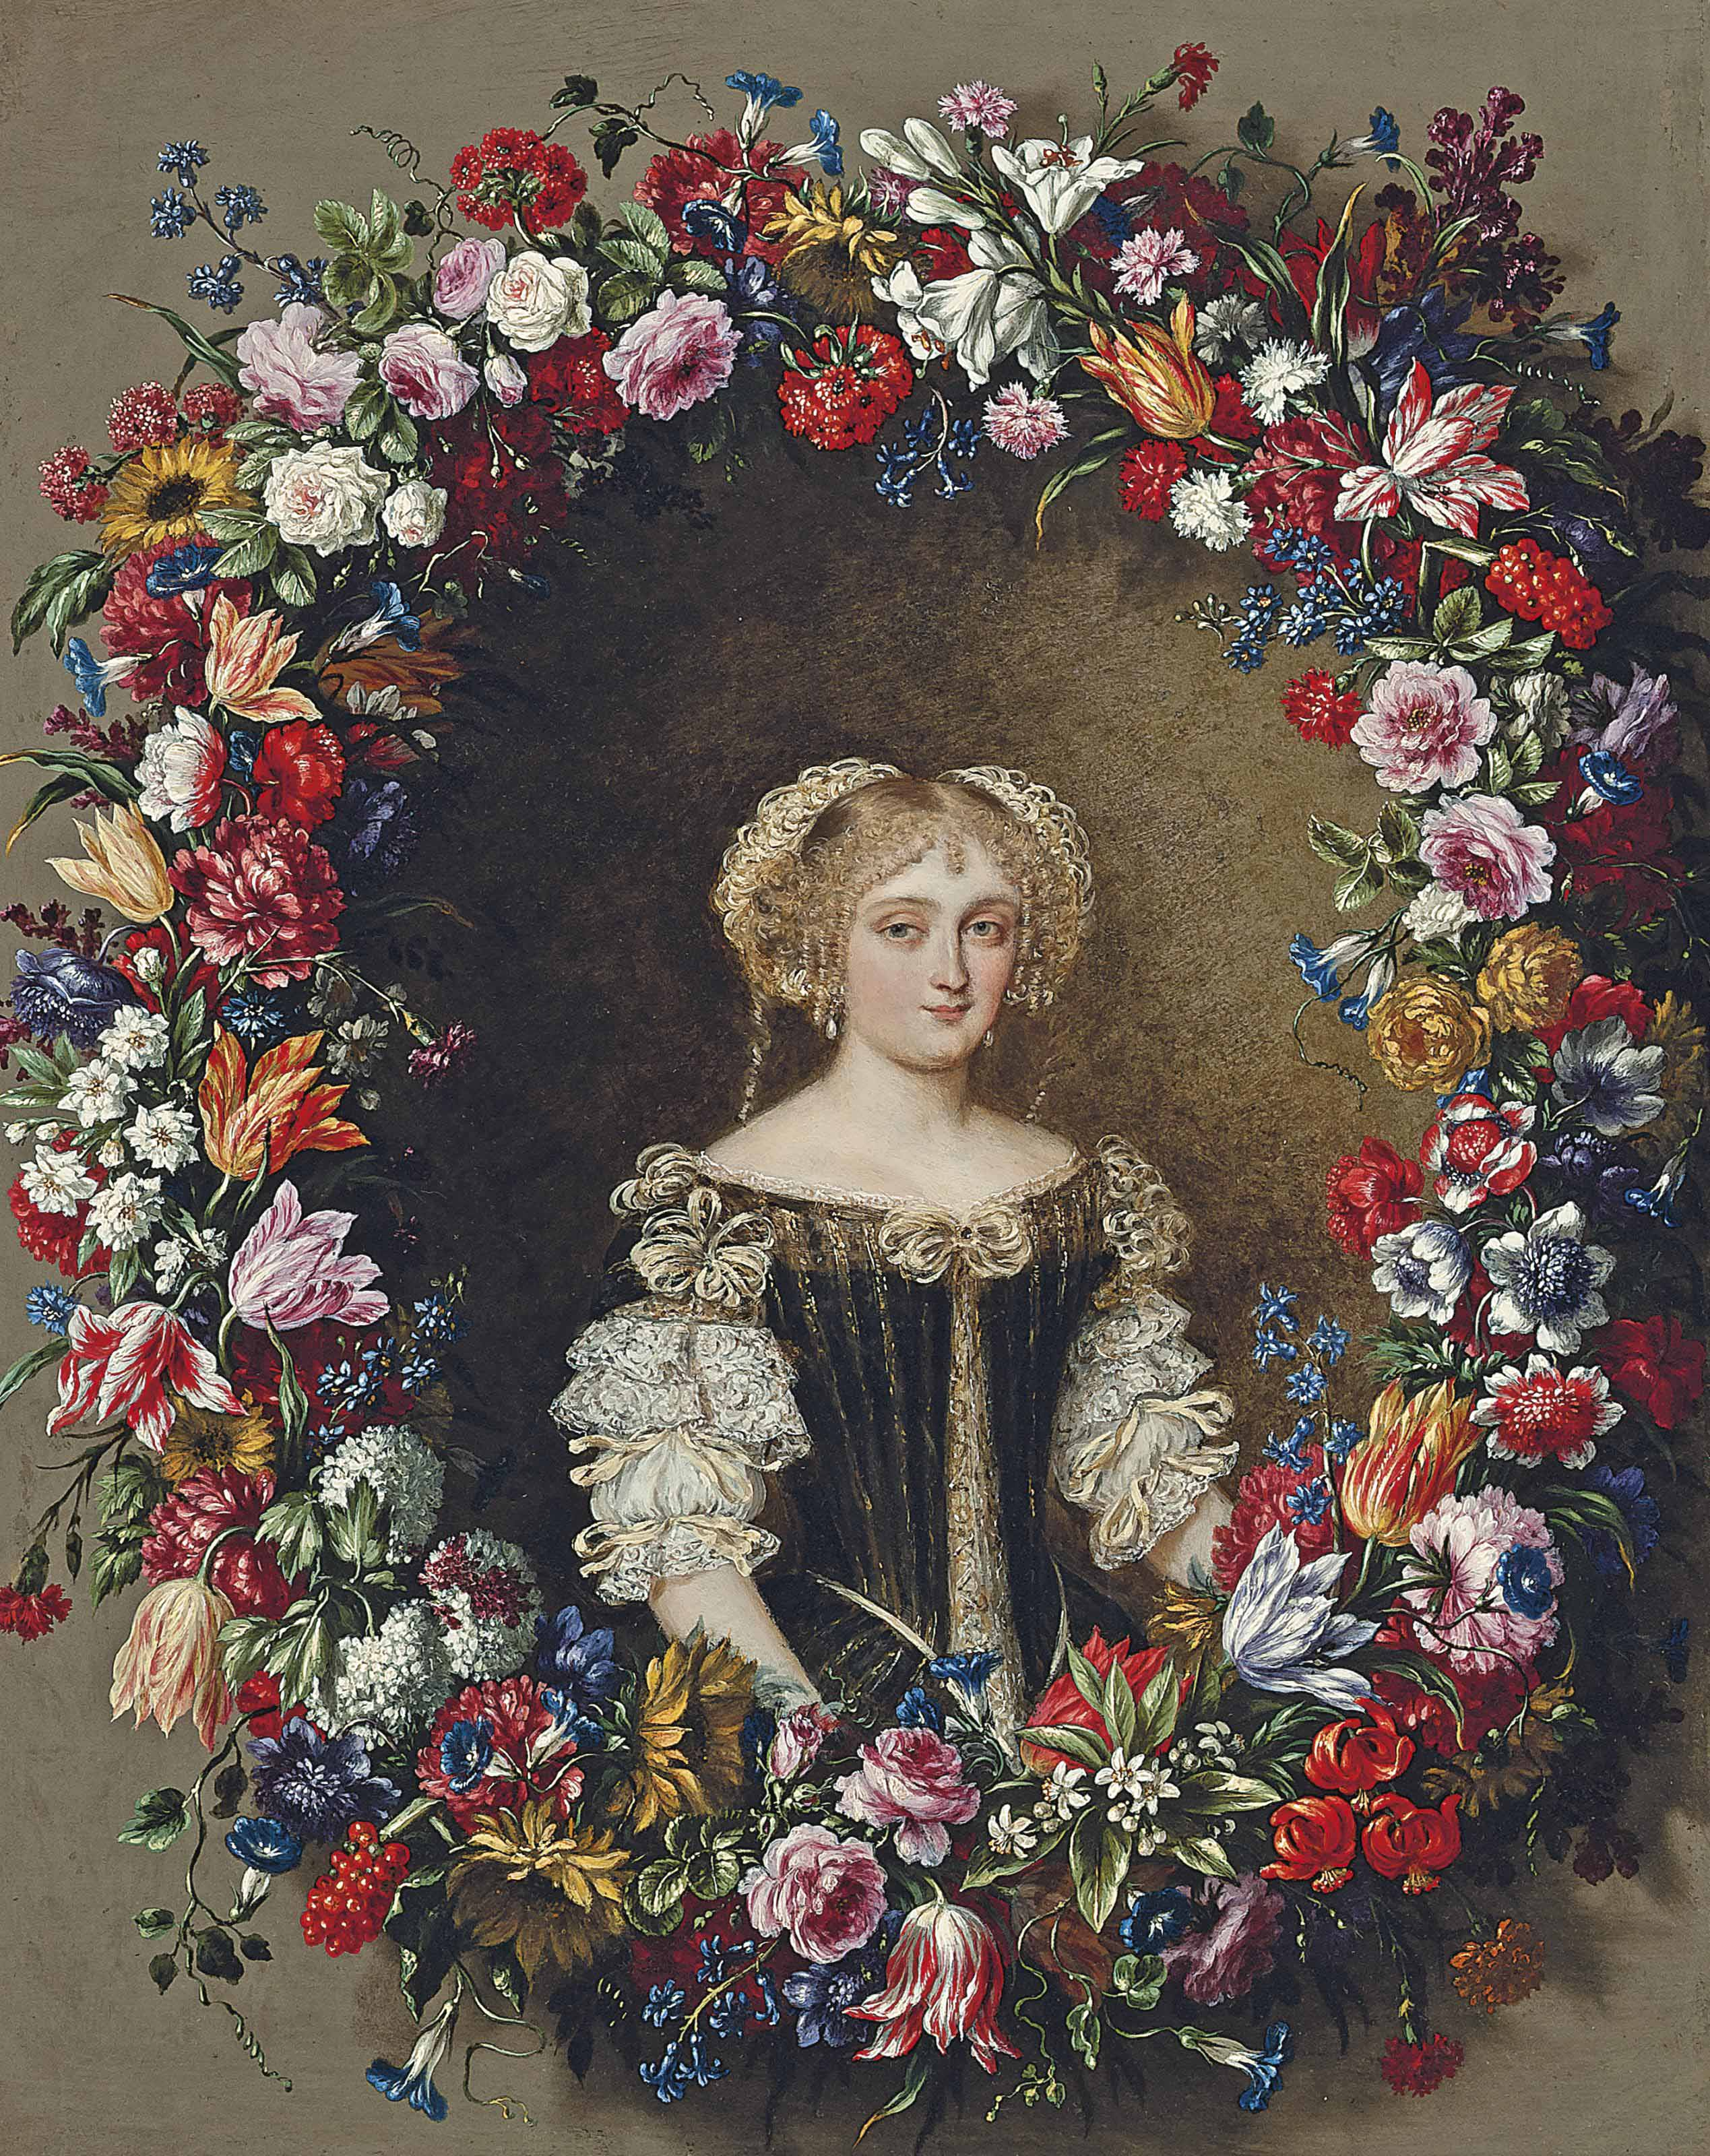 Portrait of a lady, traditionally identified as a member of the Colonna family, small half-length, in a green dress with a white chemise, surrounded by a garland of flowers.